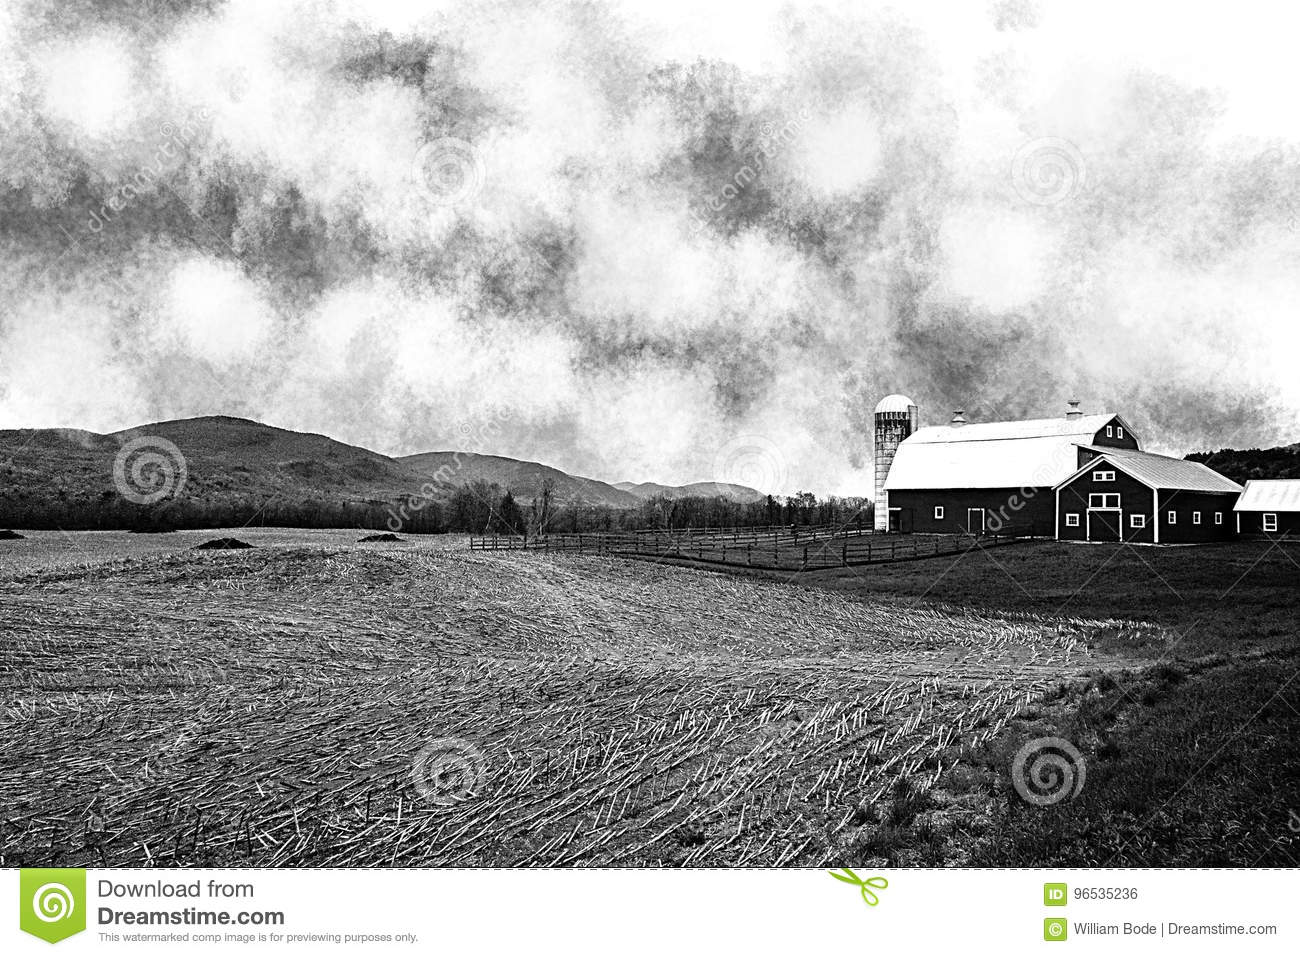 A black and white image of a vermont farm with a cut field of corn in the foreground and rolling hills in the background